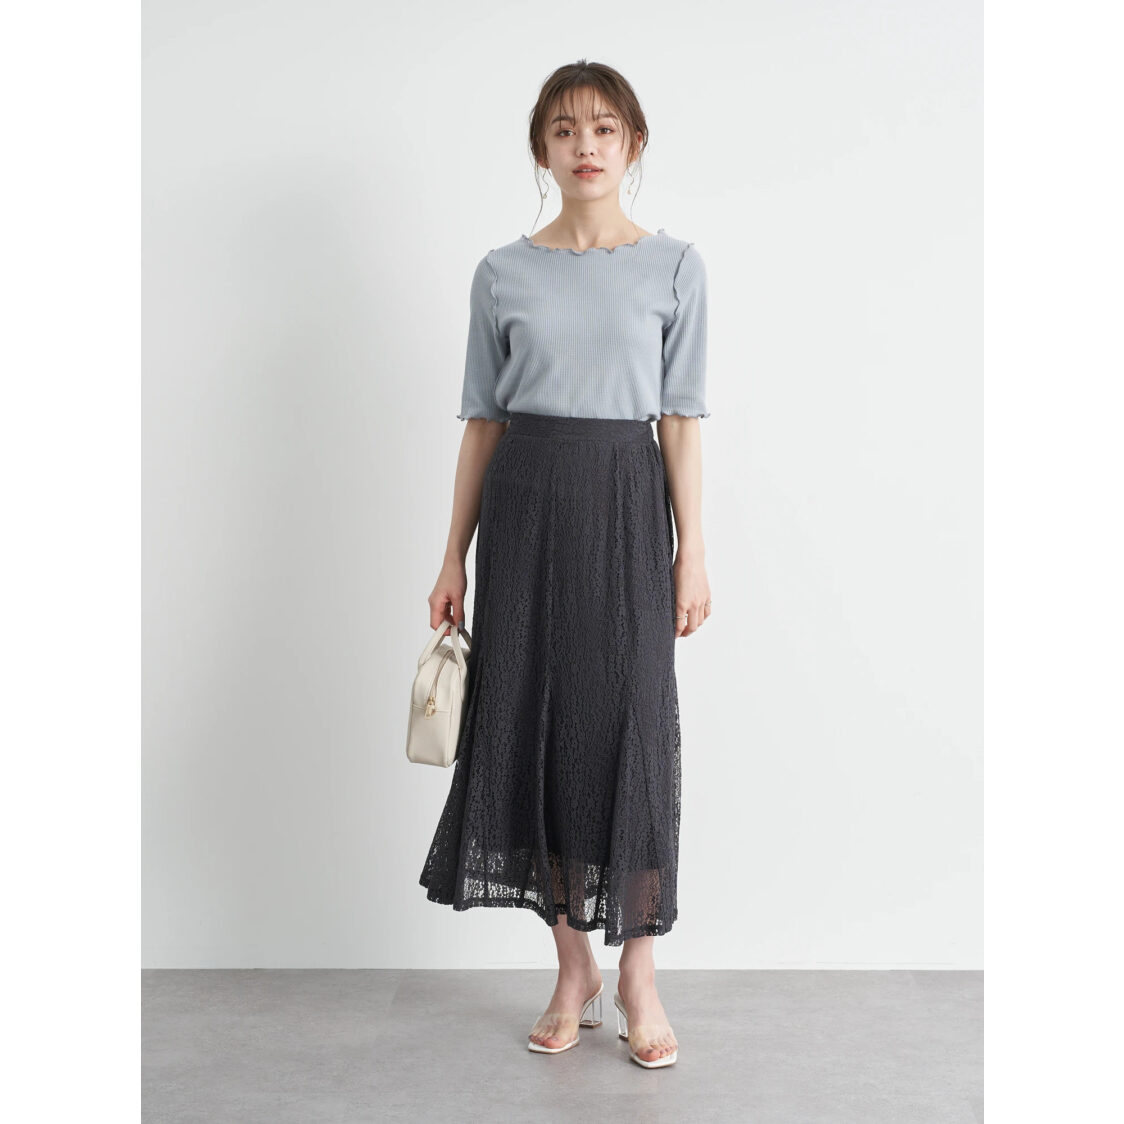 Earth Music  Ecology Floral Lace Skirt Charcoal Gray